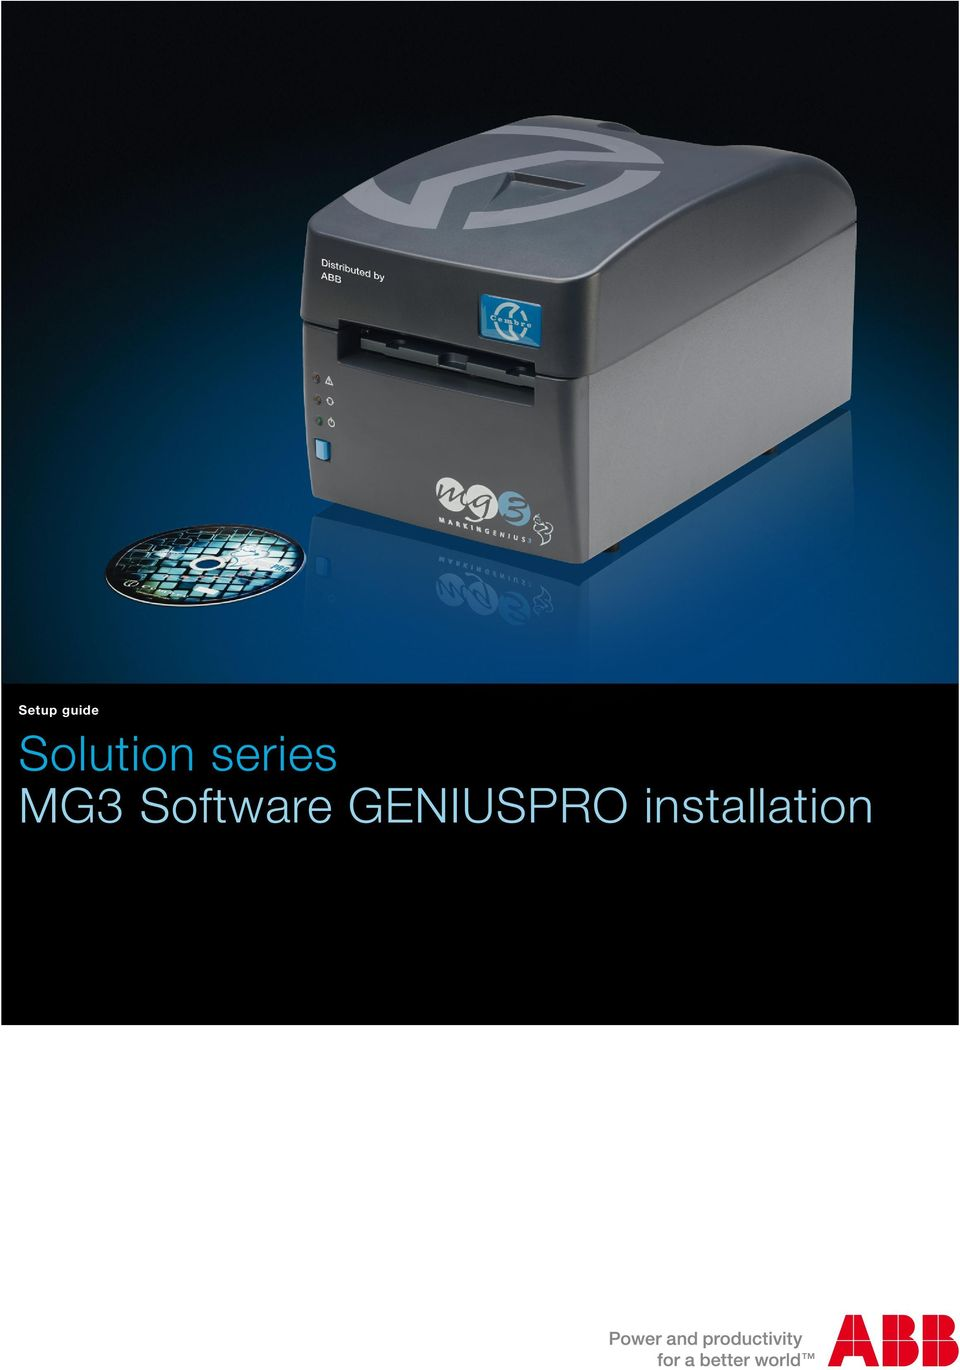 MG3 Software